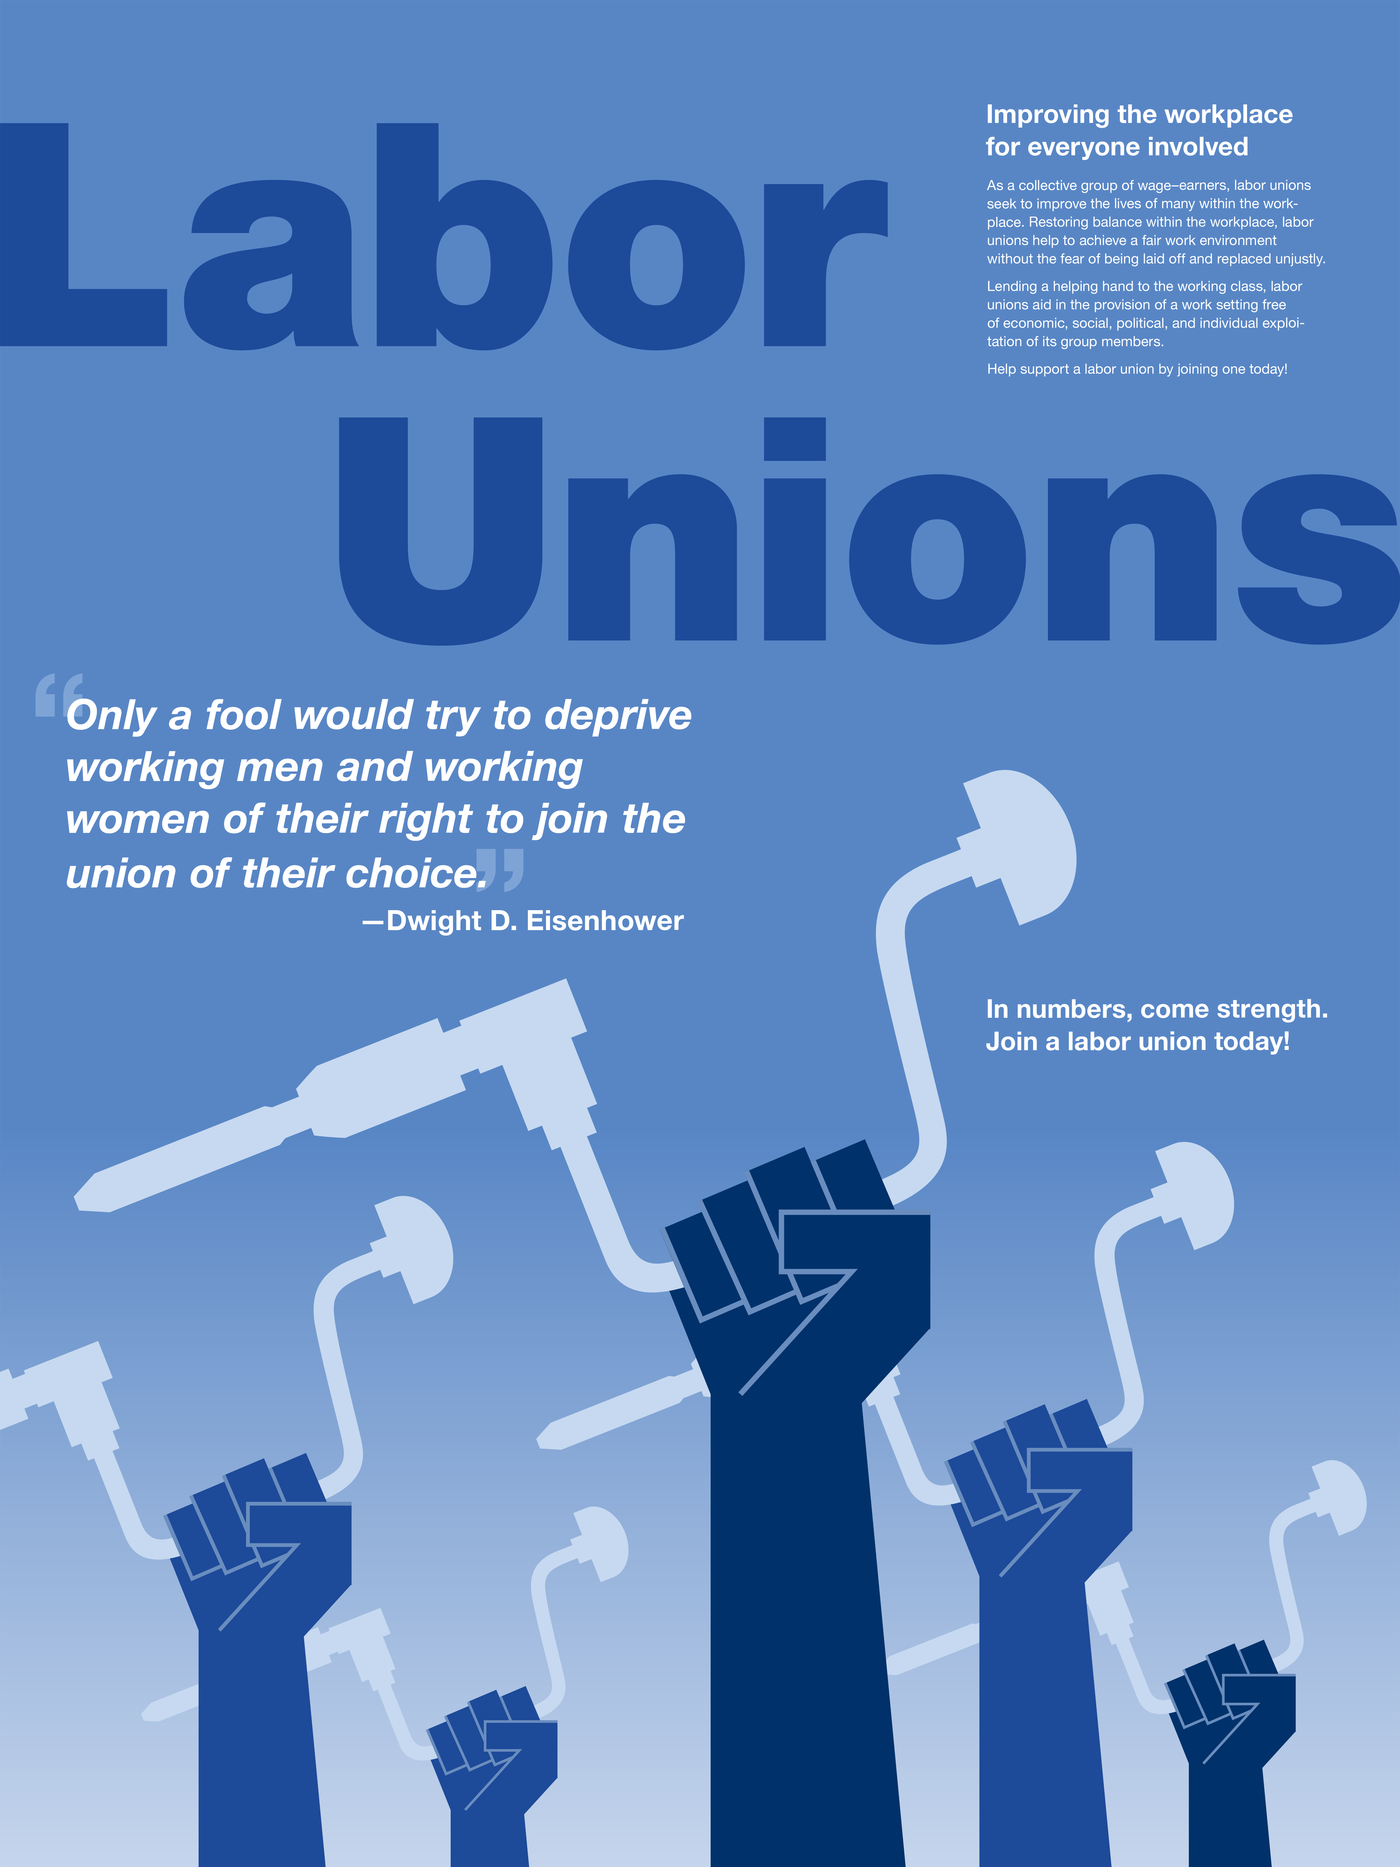 labor unions as a social contract within american society A short history of american labor [note: this is a mirror site duplicating material appearing on wwwunionweborgthe original text comes from the american federationist of march 1981] this brief history of more than 100 years of the modem trade union movement in the united states can only touch the high spots of activity and identify the principal trends of a century of achievement.